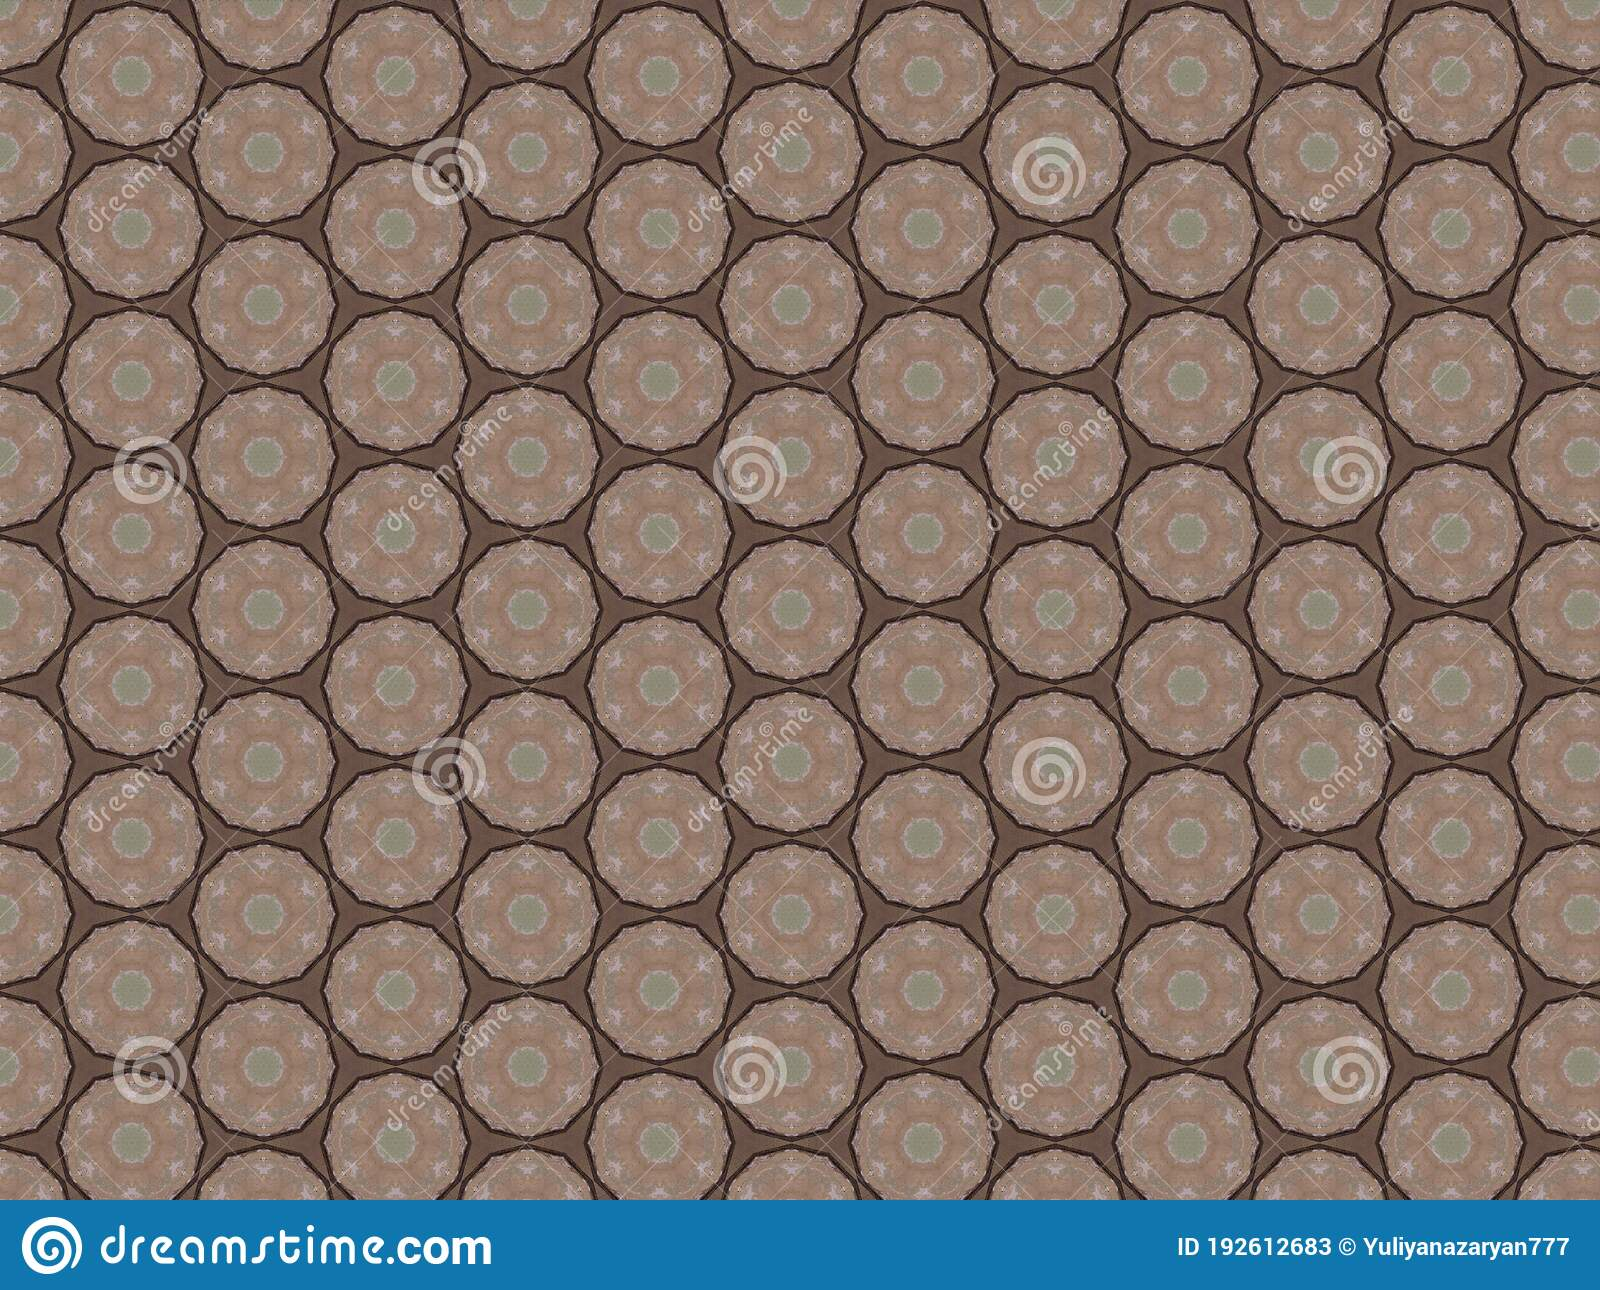 Background Wall And Ceiling And Floor Wallpaper Plaster Clay Ceramics Gypsum Modeling Geometric Shape Pattern Decor Vintage Stock Illustration Illustration Of Carpet Creative 192612683